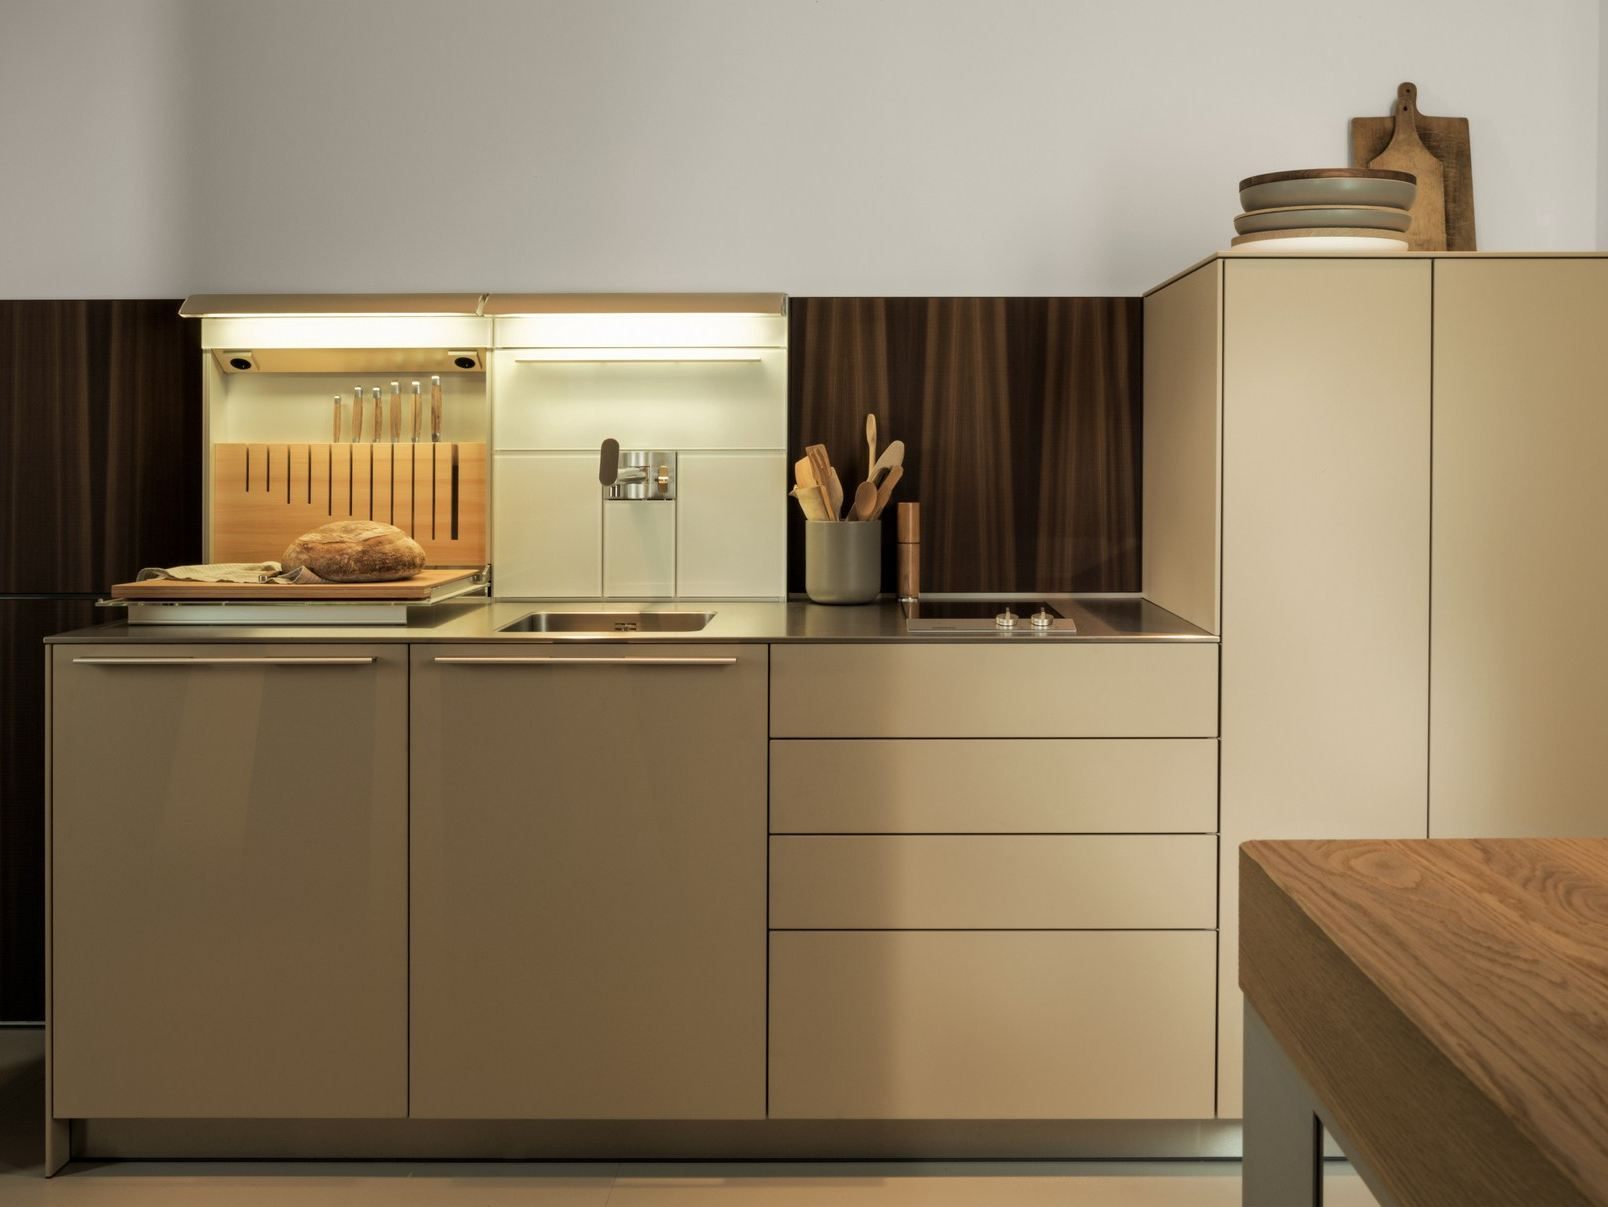 B3 Lacquered Stainless Steel And Wood Kitchen B3 Larch Kitchen Bulthaup on bulthaup kitchen prices